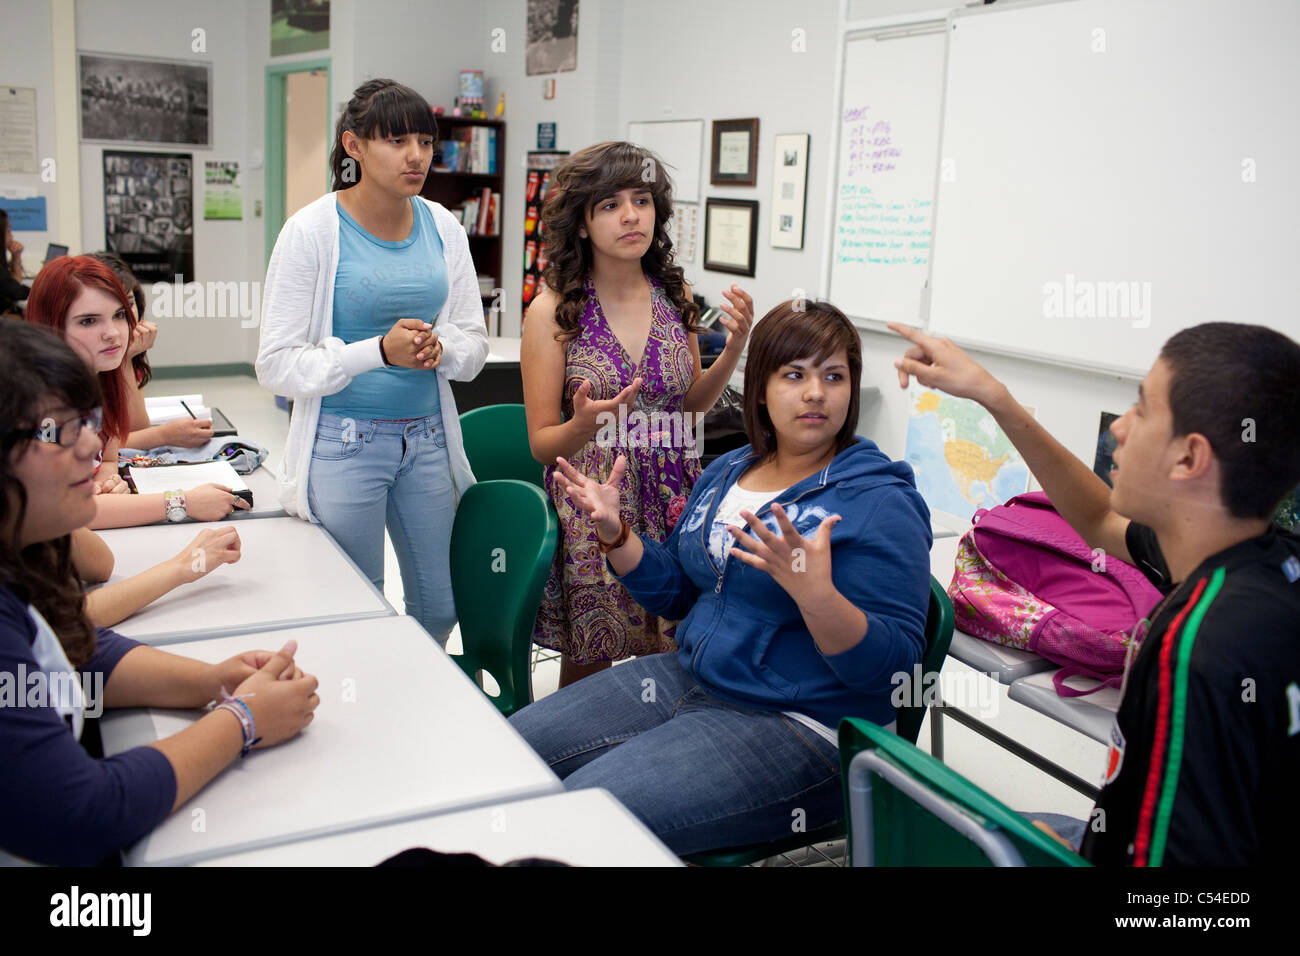 Group of students in discussion in El Paso, Texas high school classroom - Stock Image